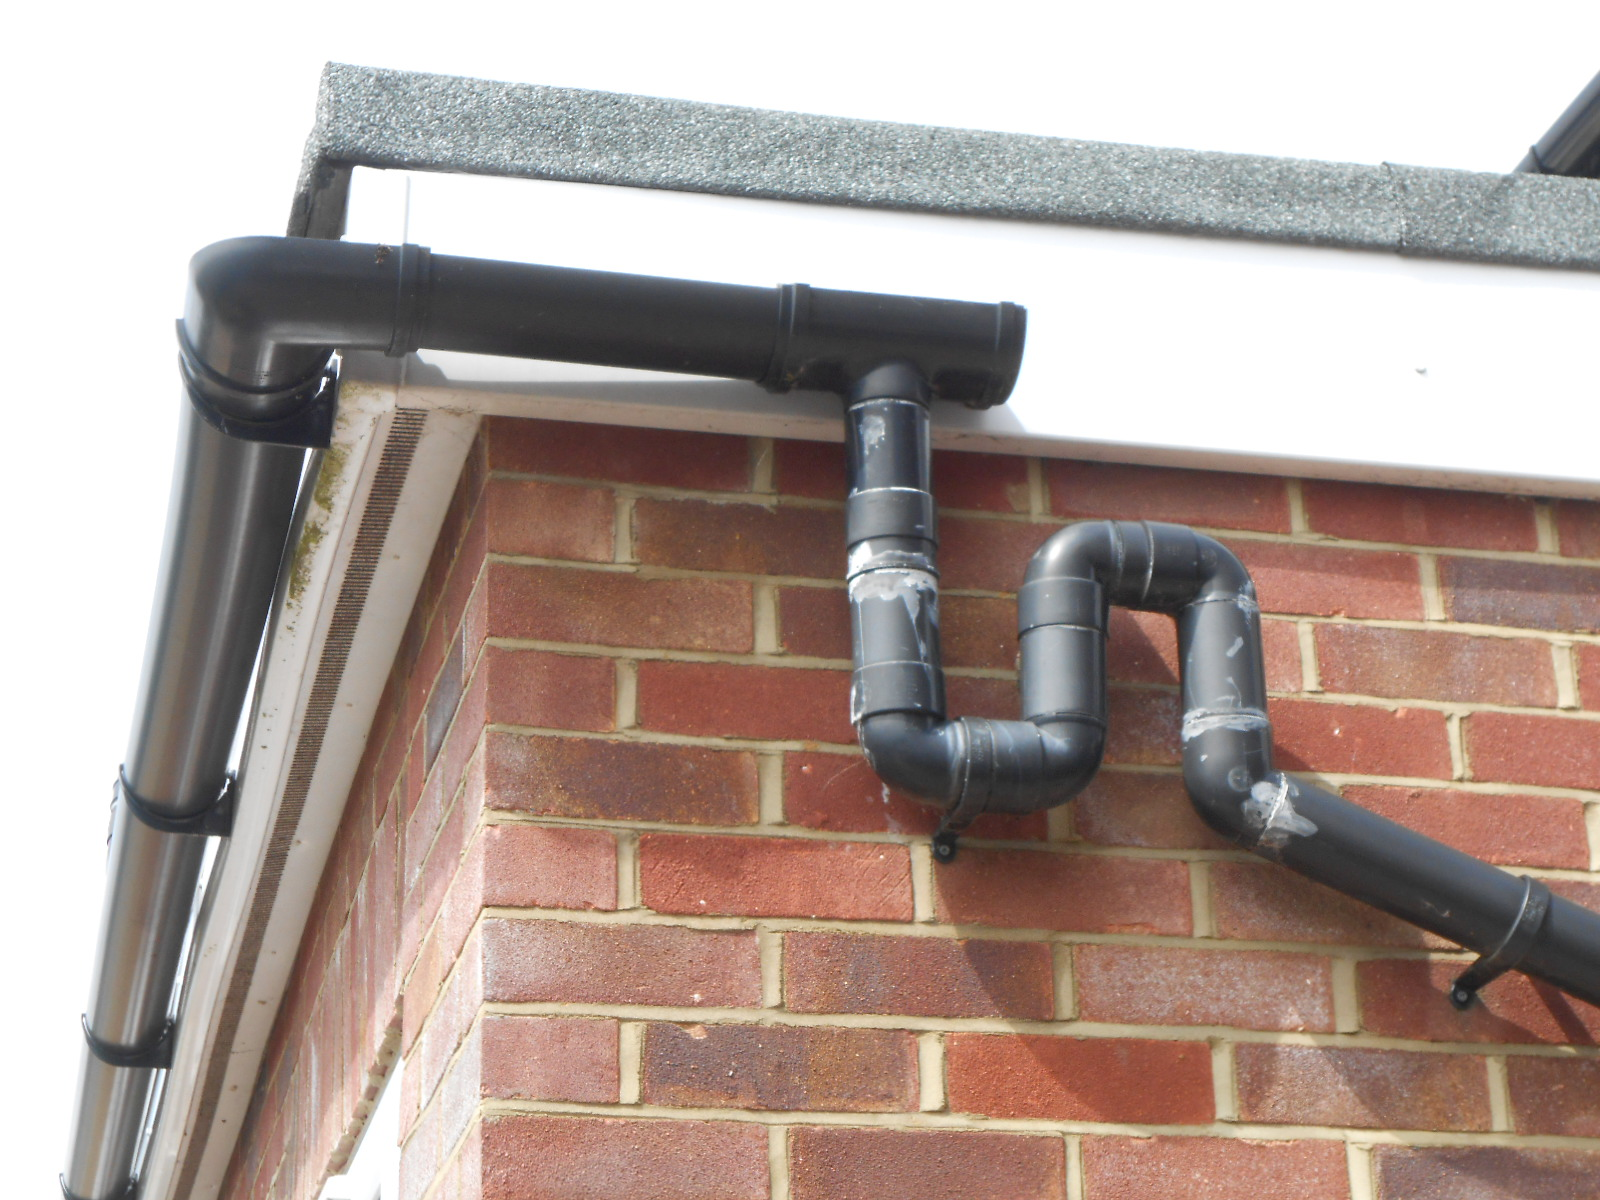 Soakaways And Soil And Vent Pipes Brian Gale Surveyors